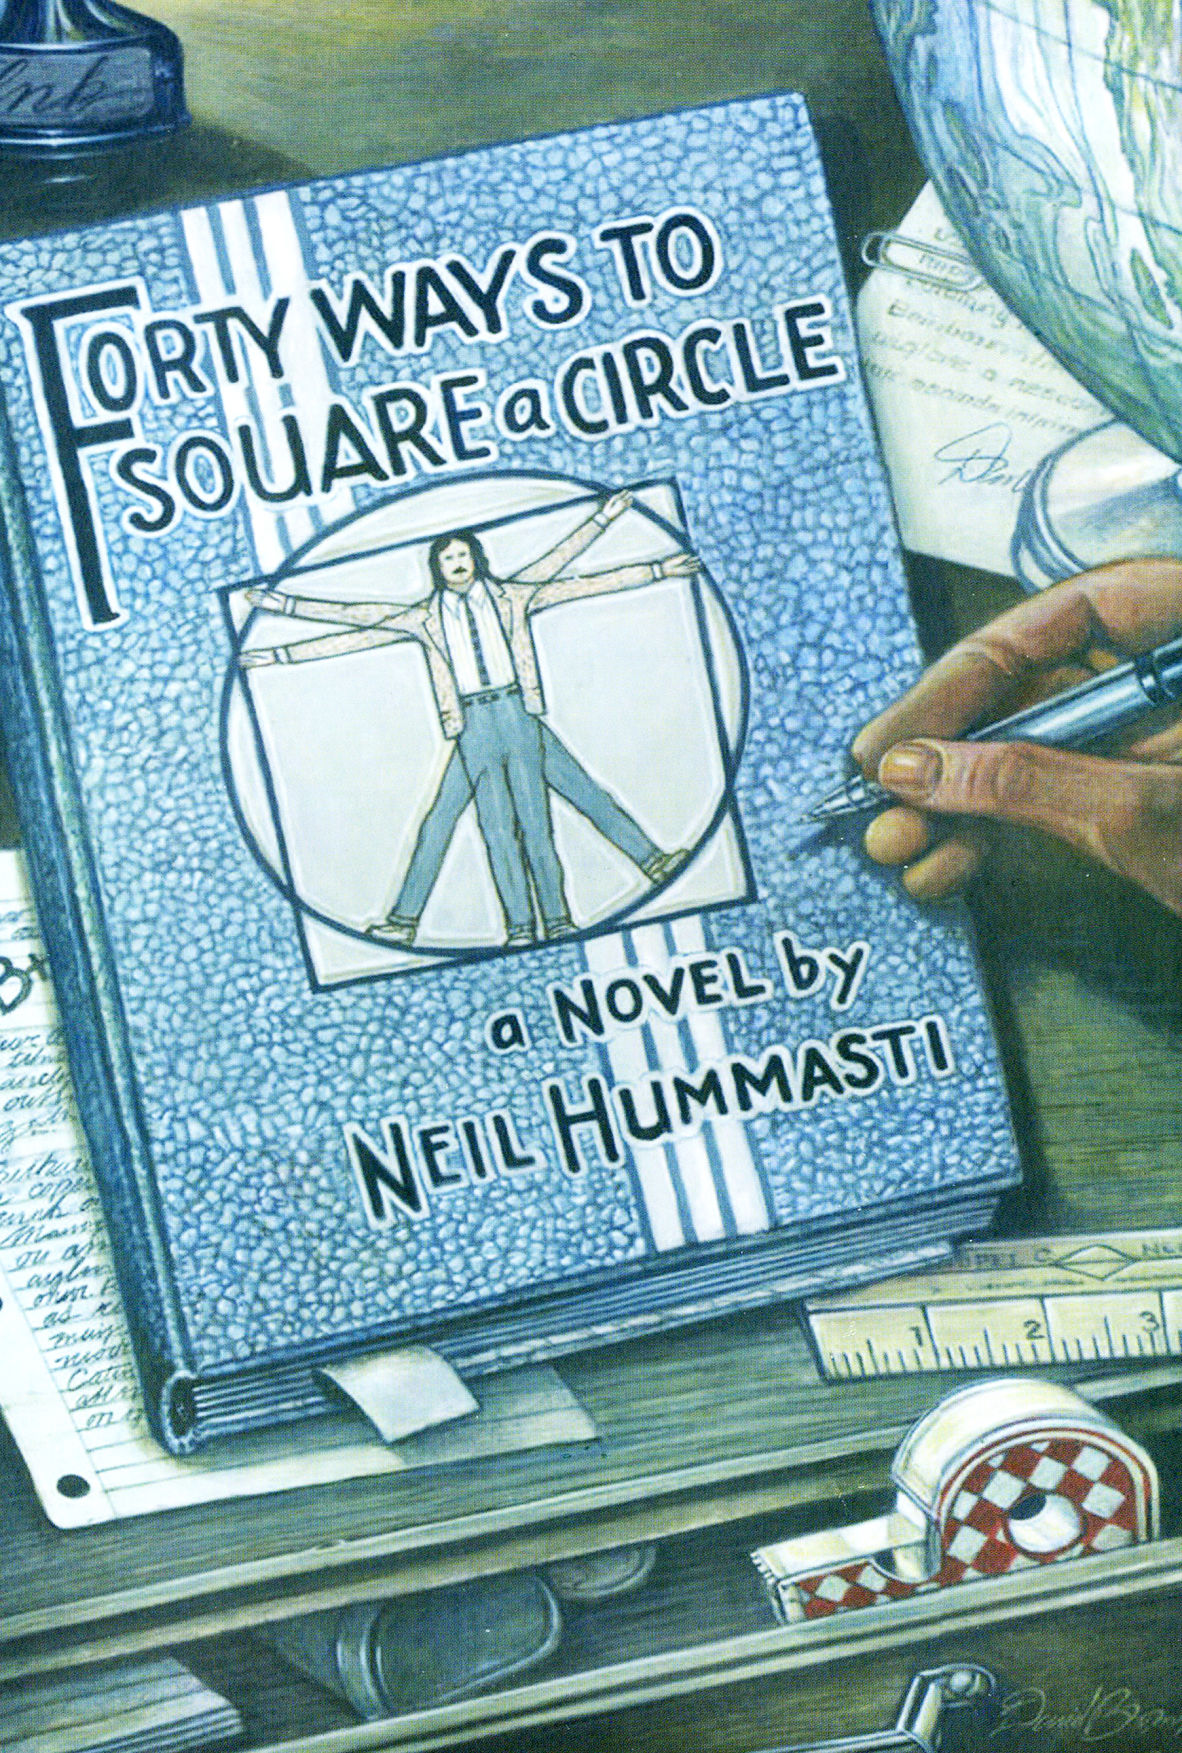 'Forty Ways to Square a Circle'